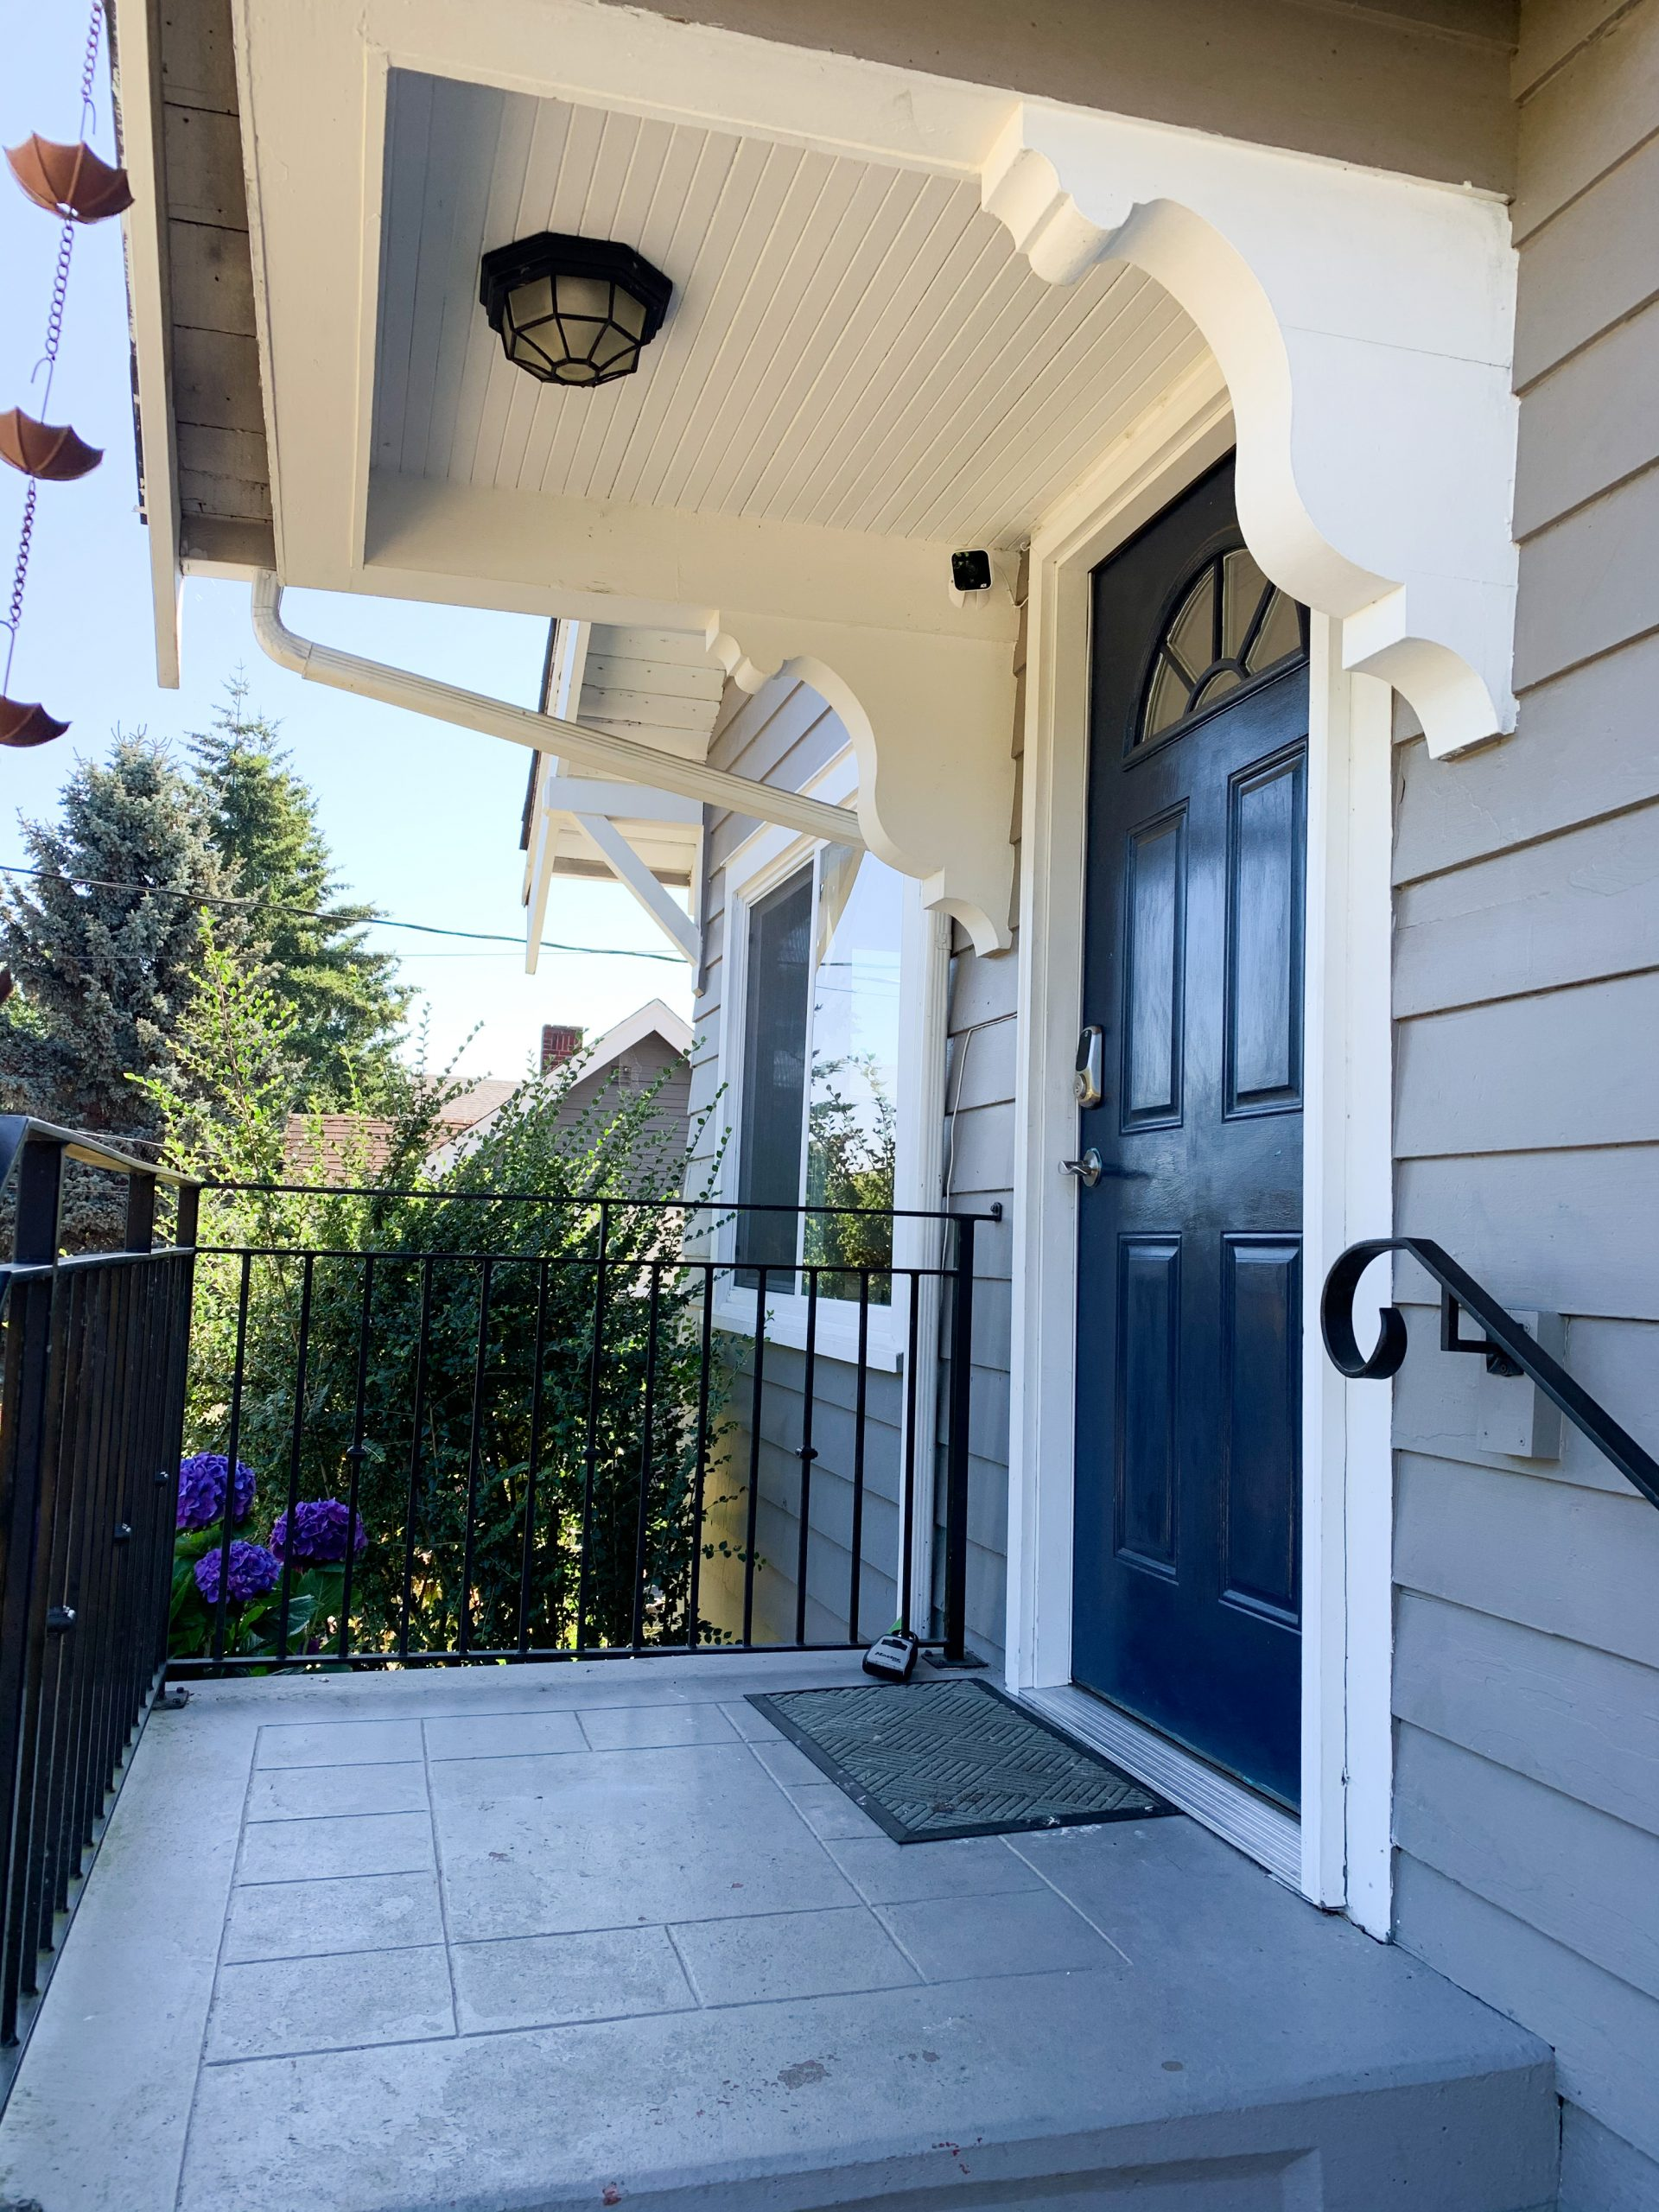 Benjamin Moore Silver Lake Chantilly Lace Exterior Paint Color .007